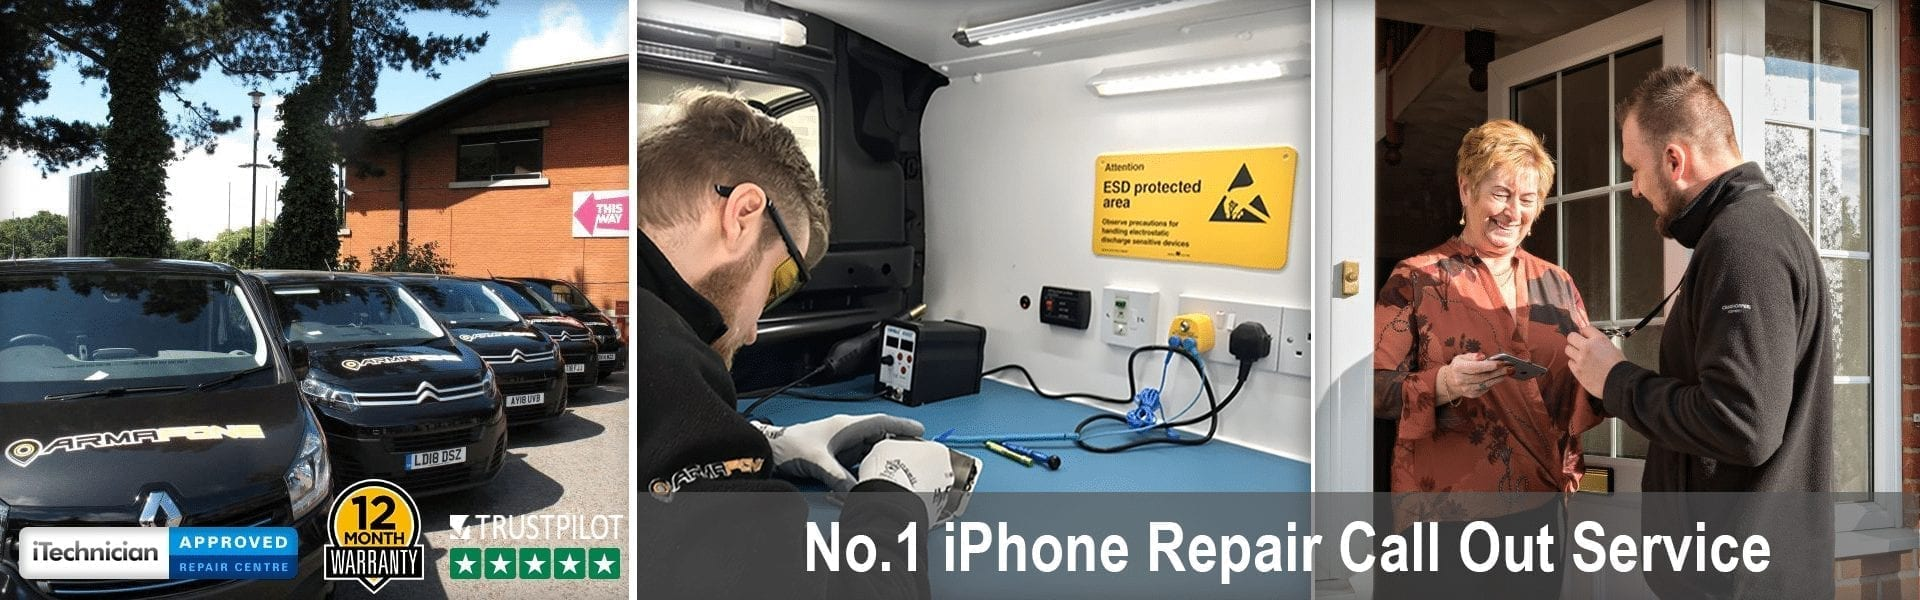 Repair call out header image